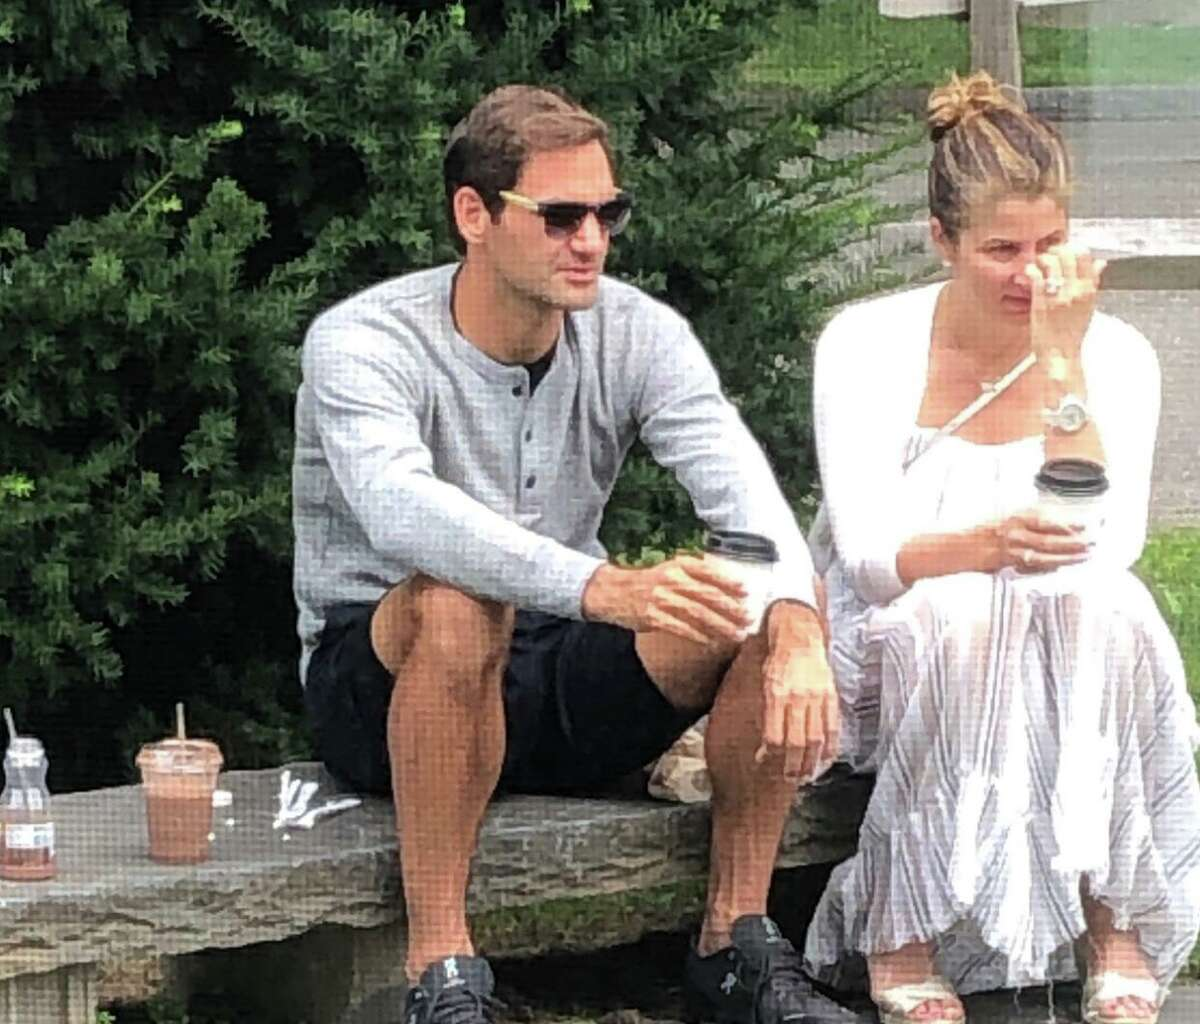 Roger Federer and family enjoy coffee in Riverside Greenwich is no stranger to celebrities, but the sighting of a tennis pro having coffee was the talk of the town in September. Tennis star Roger Federer, his wife, Mirka, and their children were seen enjoying coffee at Ada's Kitchen + Coffee in Riverside. The eight-time Wimbledon champion and his family are renting a house on the water in Riverside. Read more.